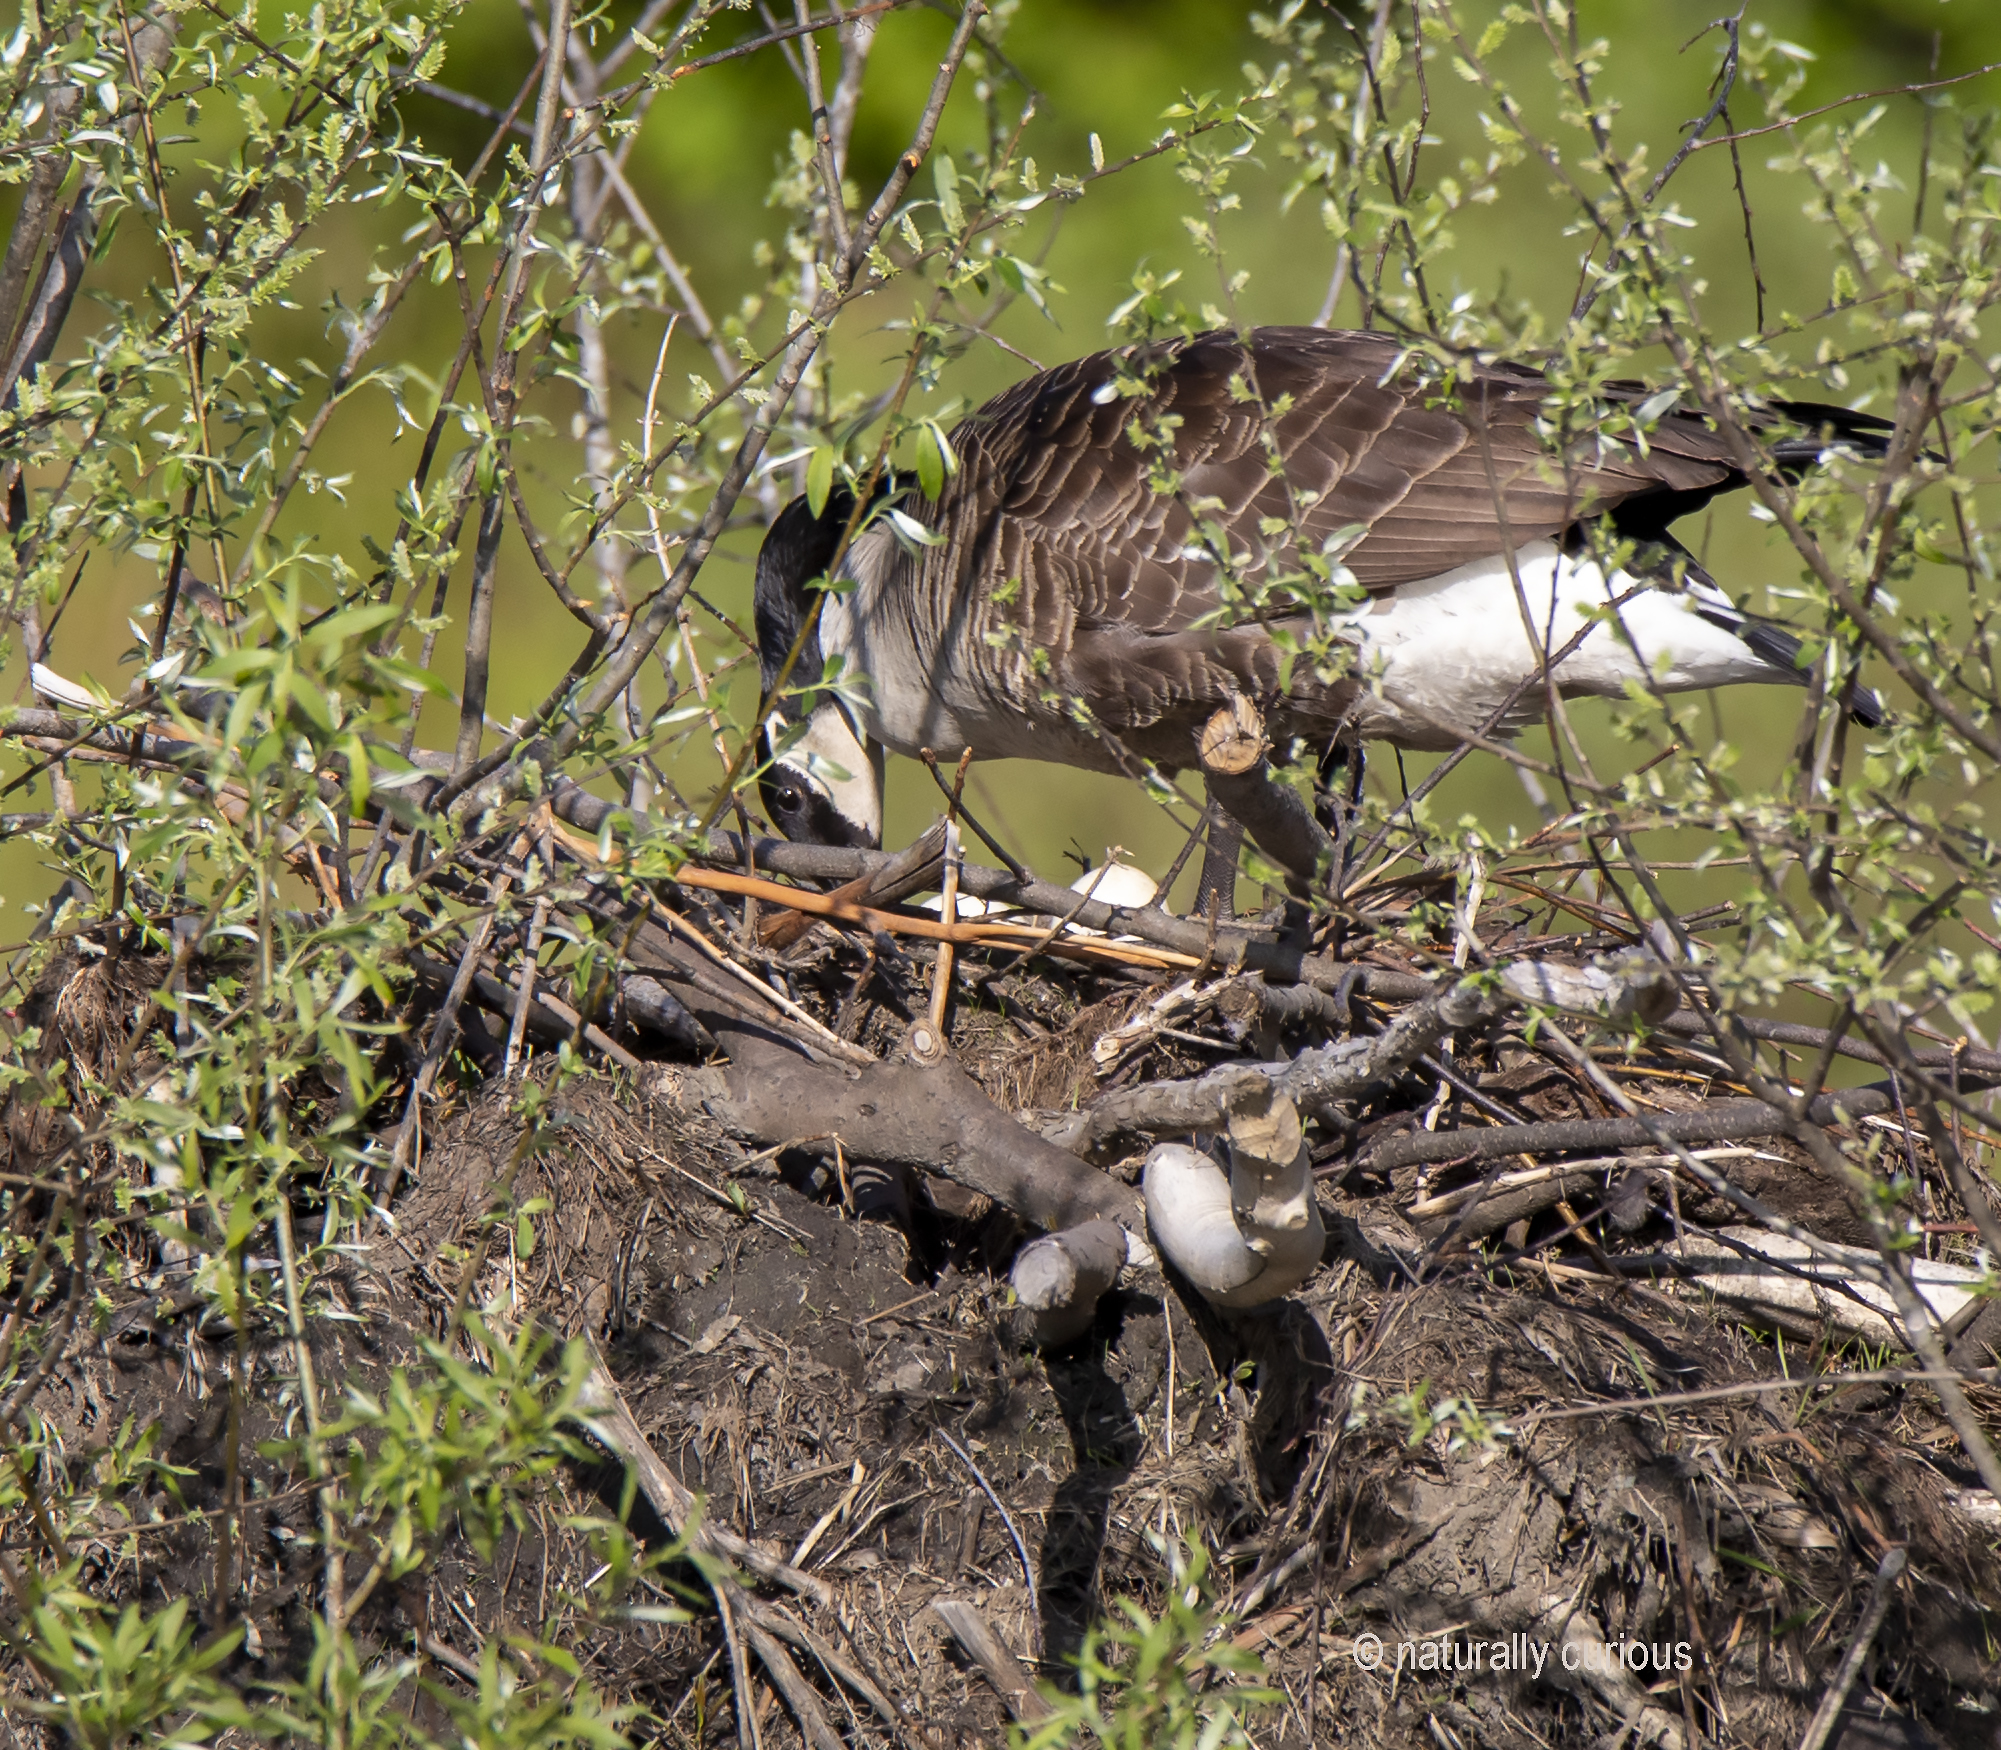 5-31-19 C. goose turning eggs 1B0A8783